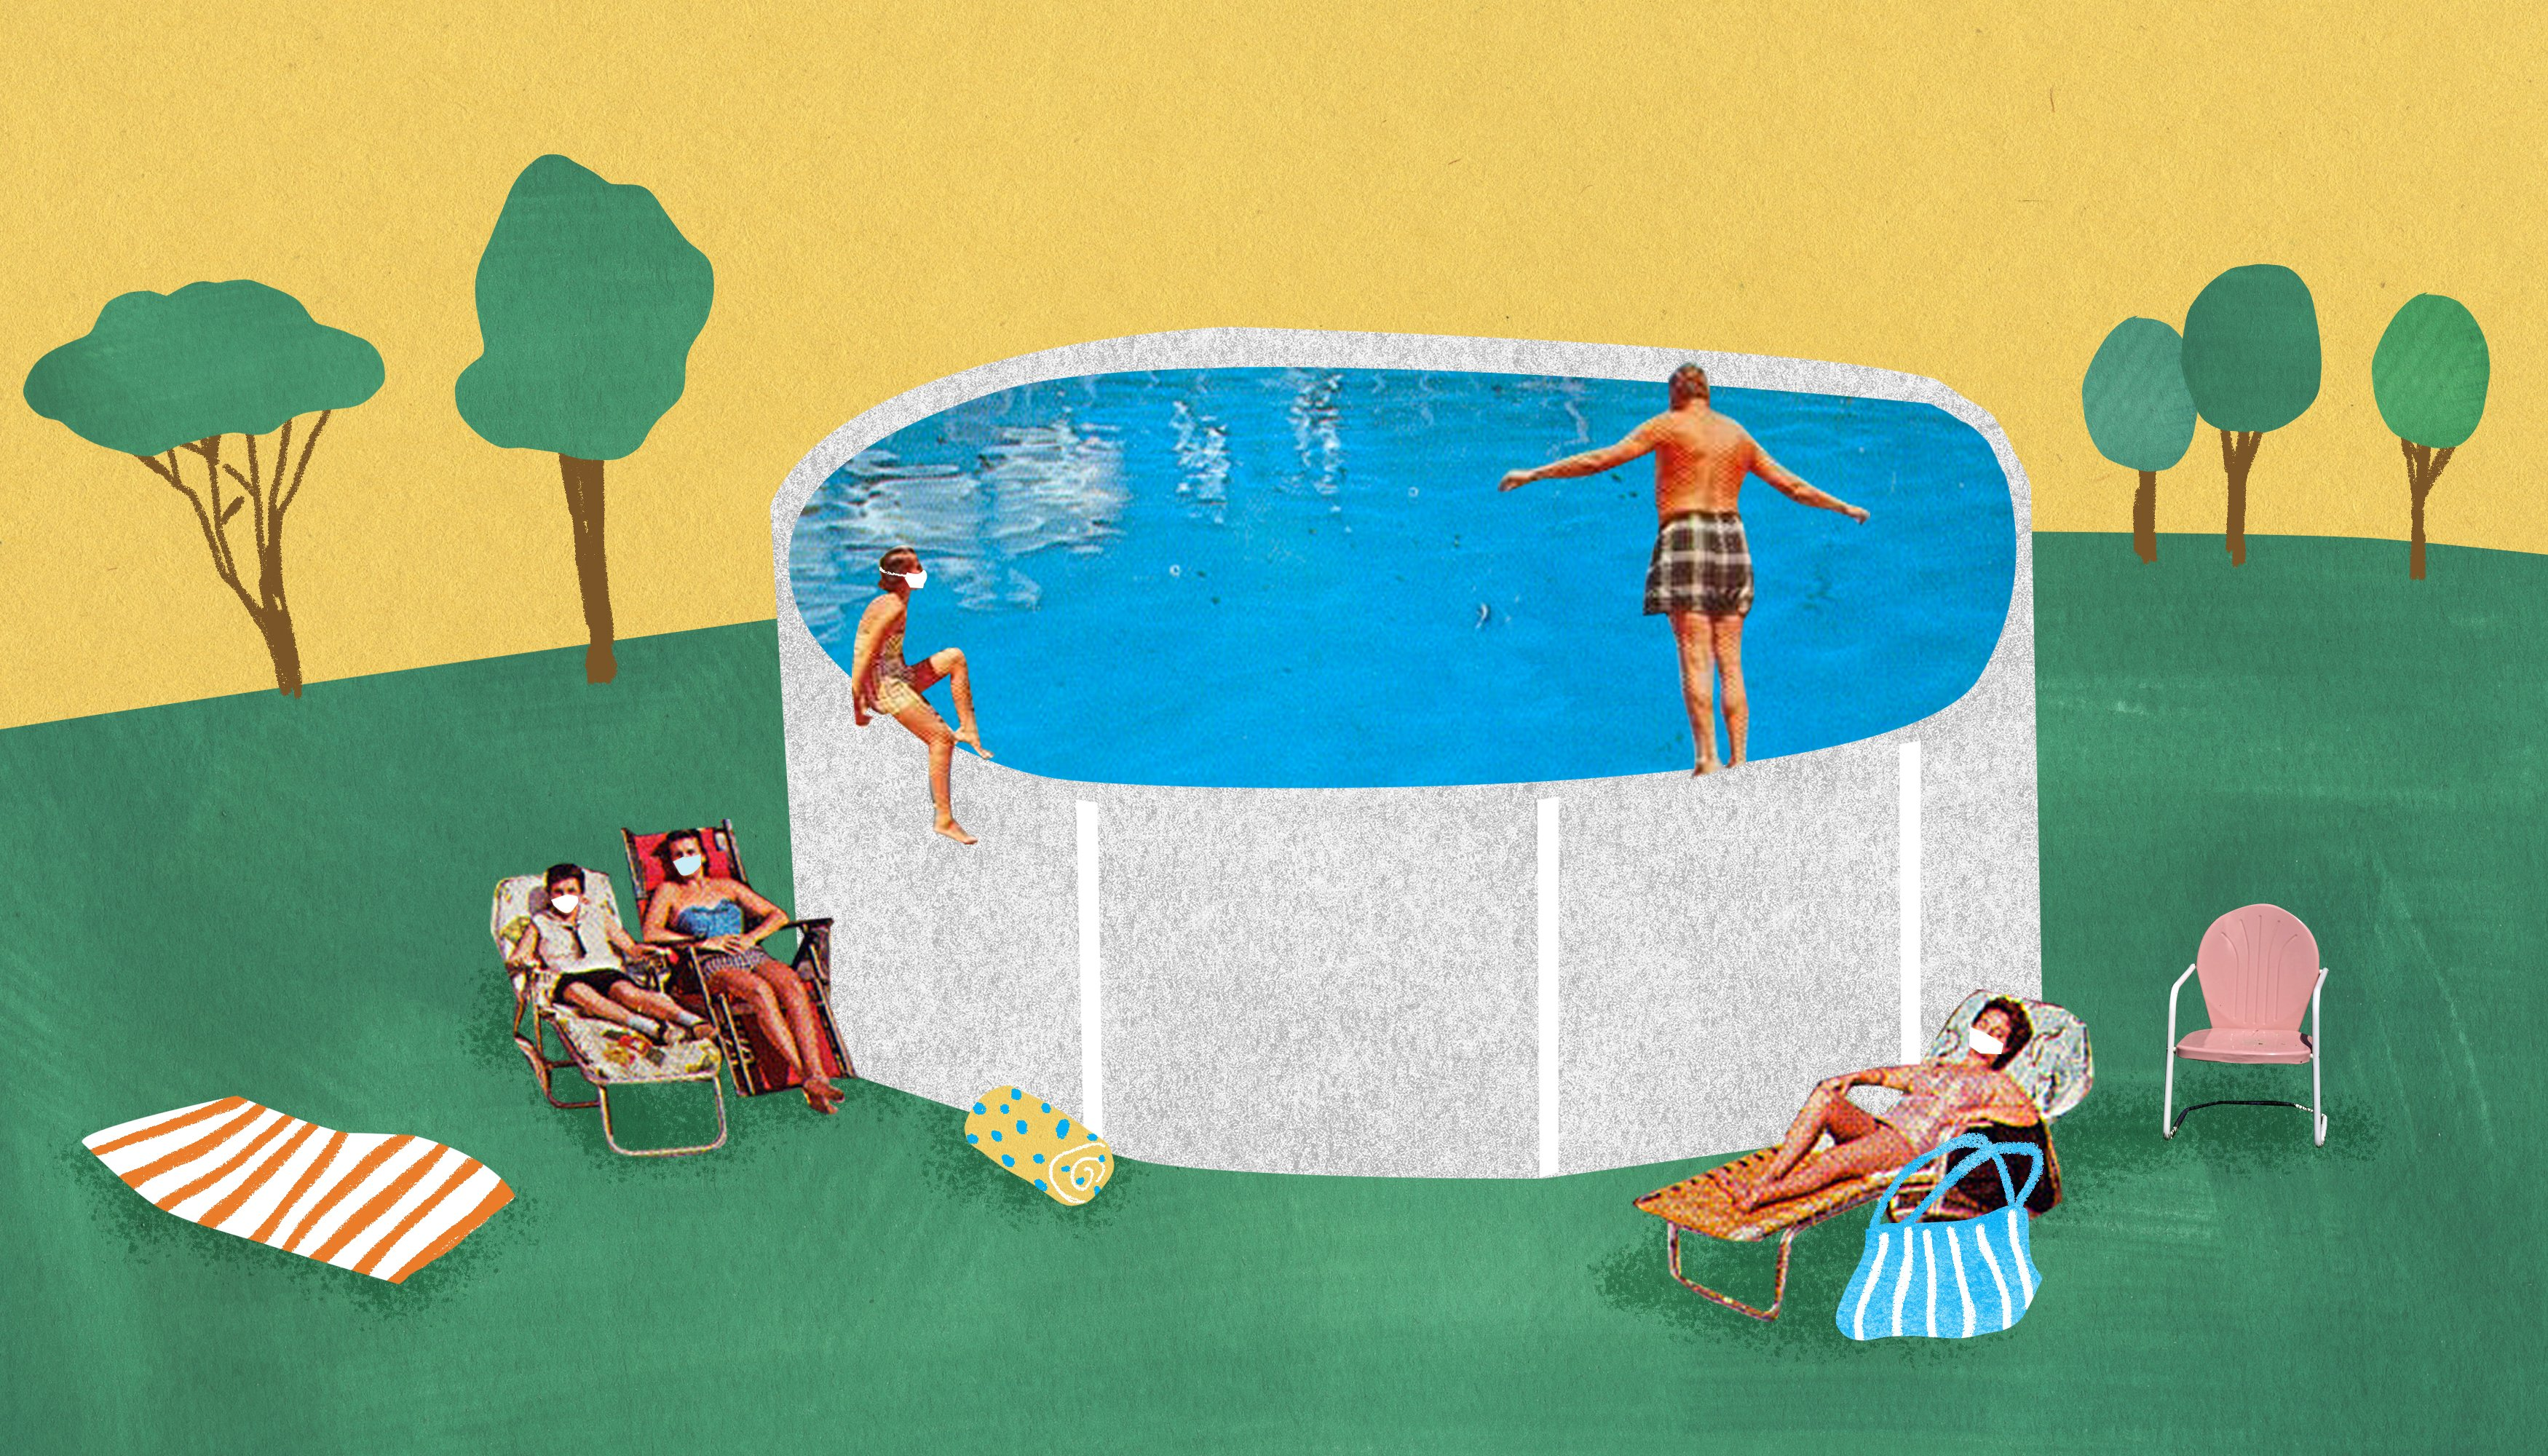 In Defense of the Aboveground Pool